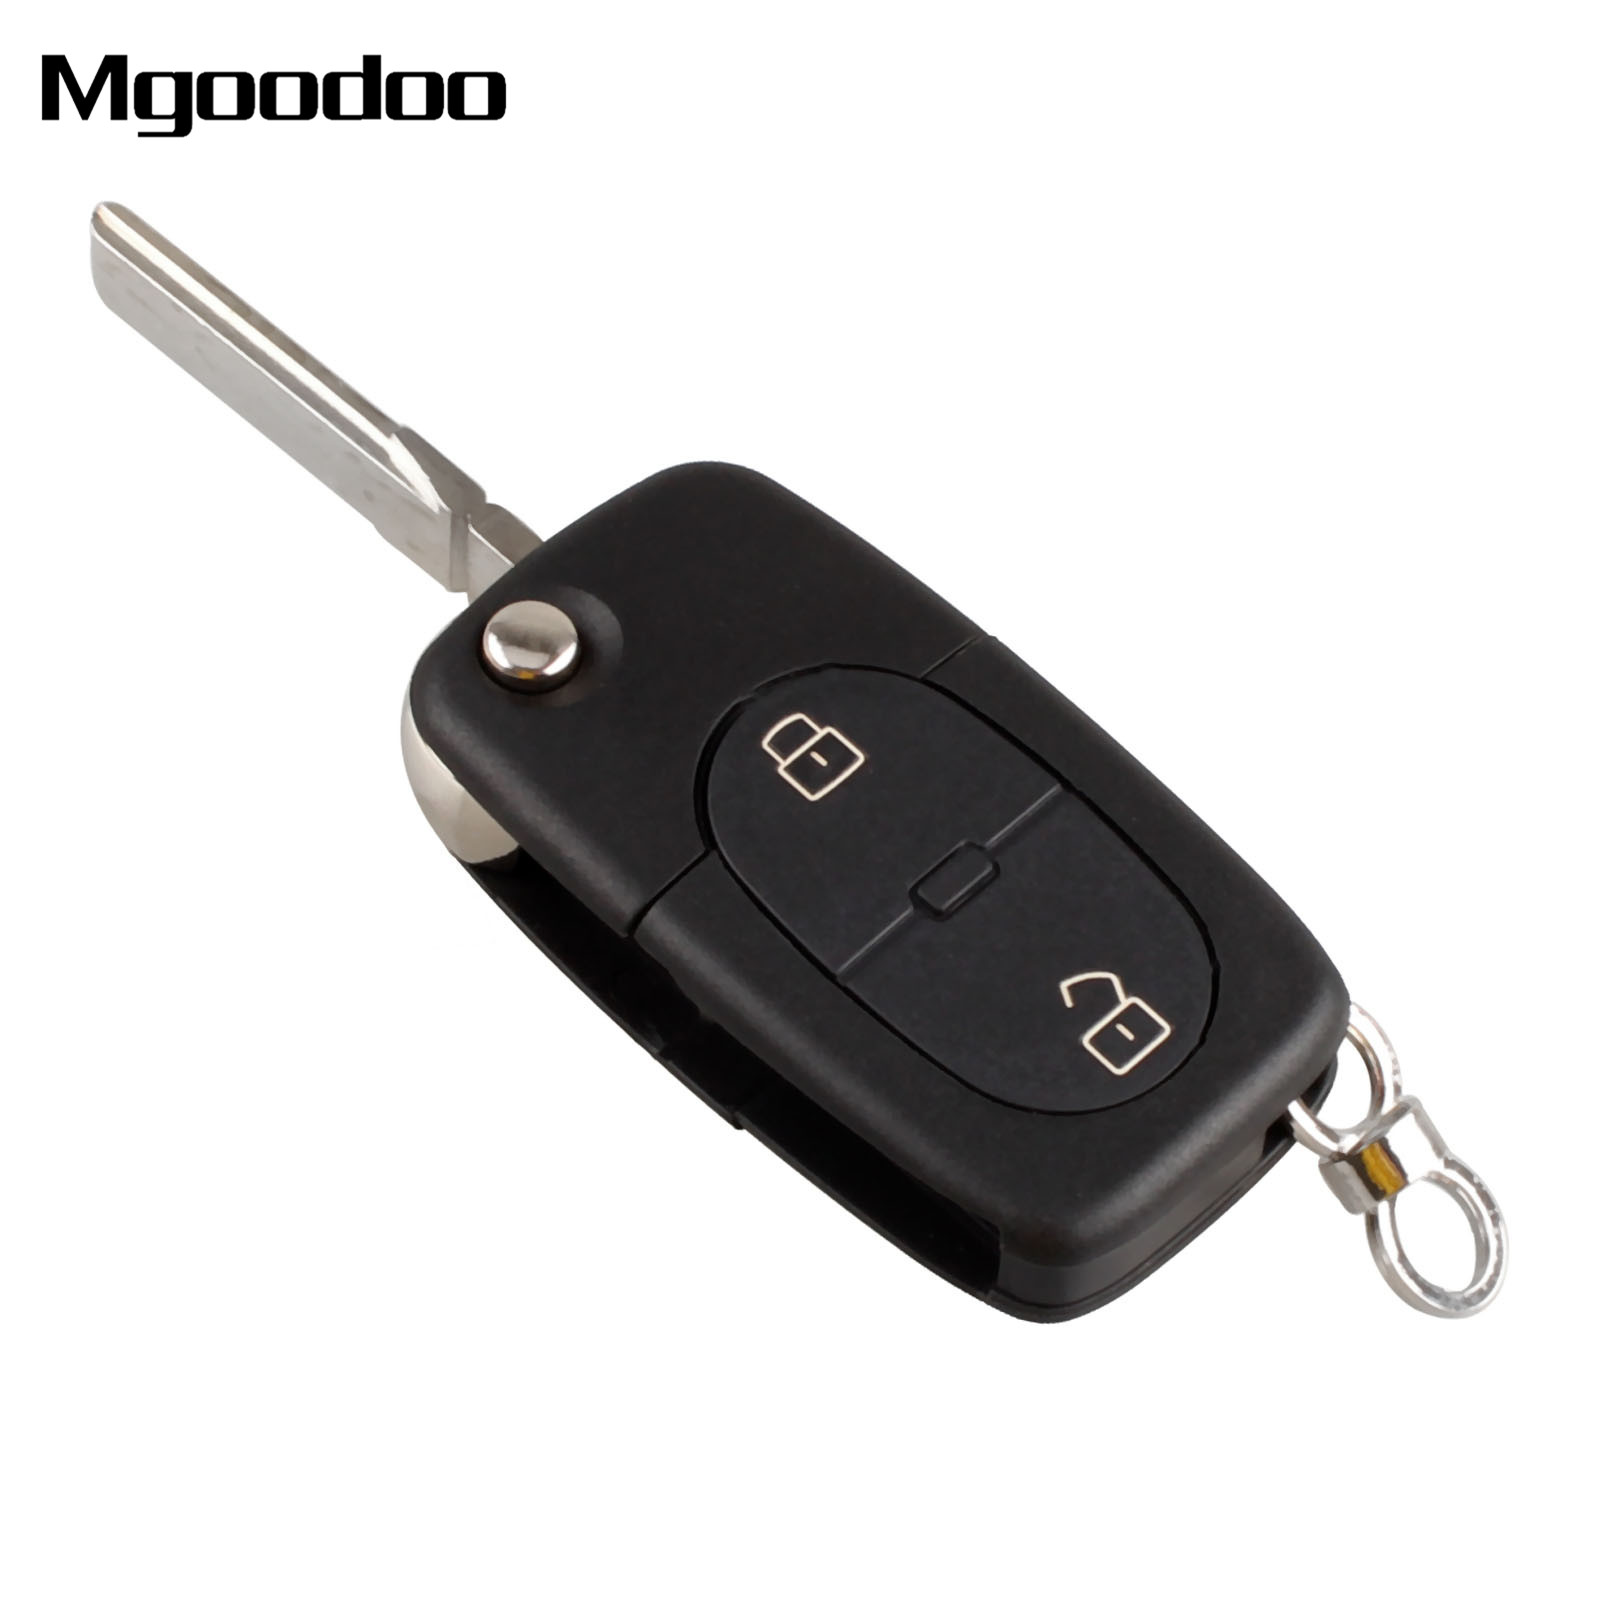 Mgoodoo Flip Folding Remote Key Fob Case 2 Buttons Replacement Car Shell For Audi A2 A3 A4 A6 CR2032 Blank Blade